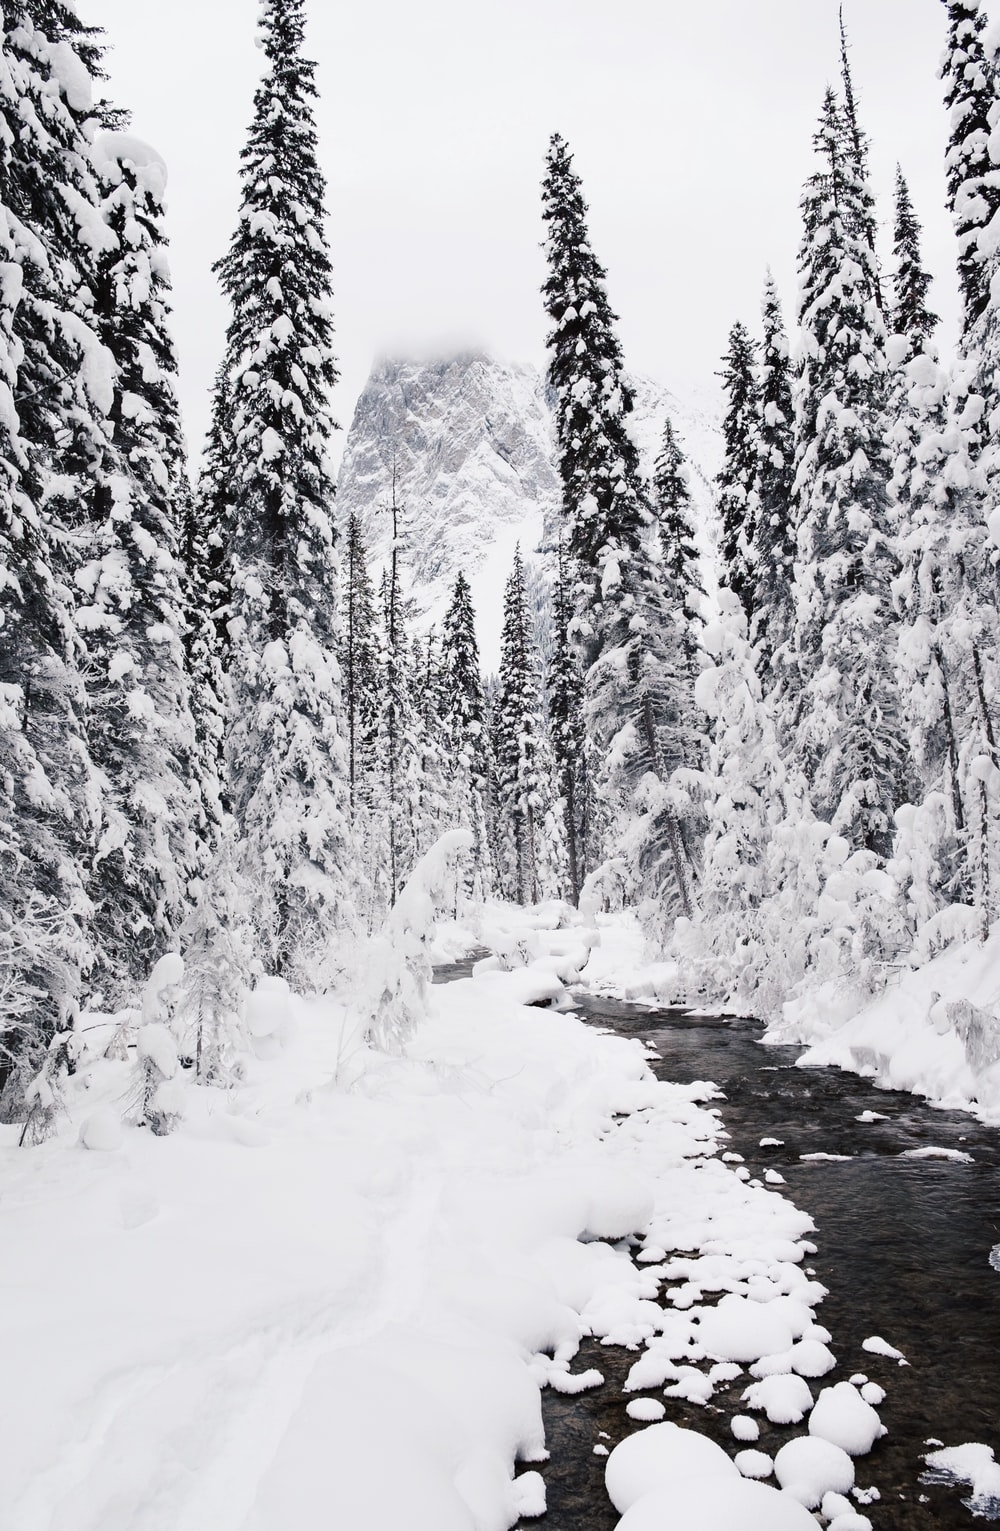 body of water coated snow center of pine trees